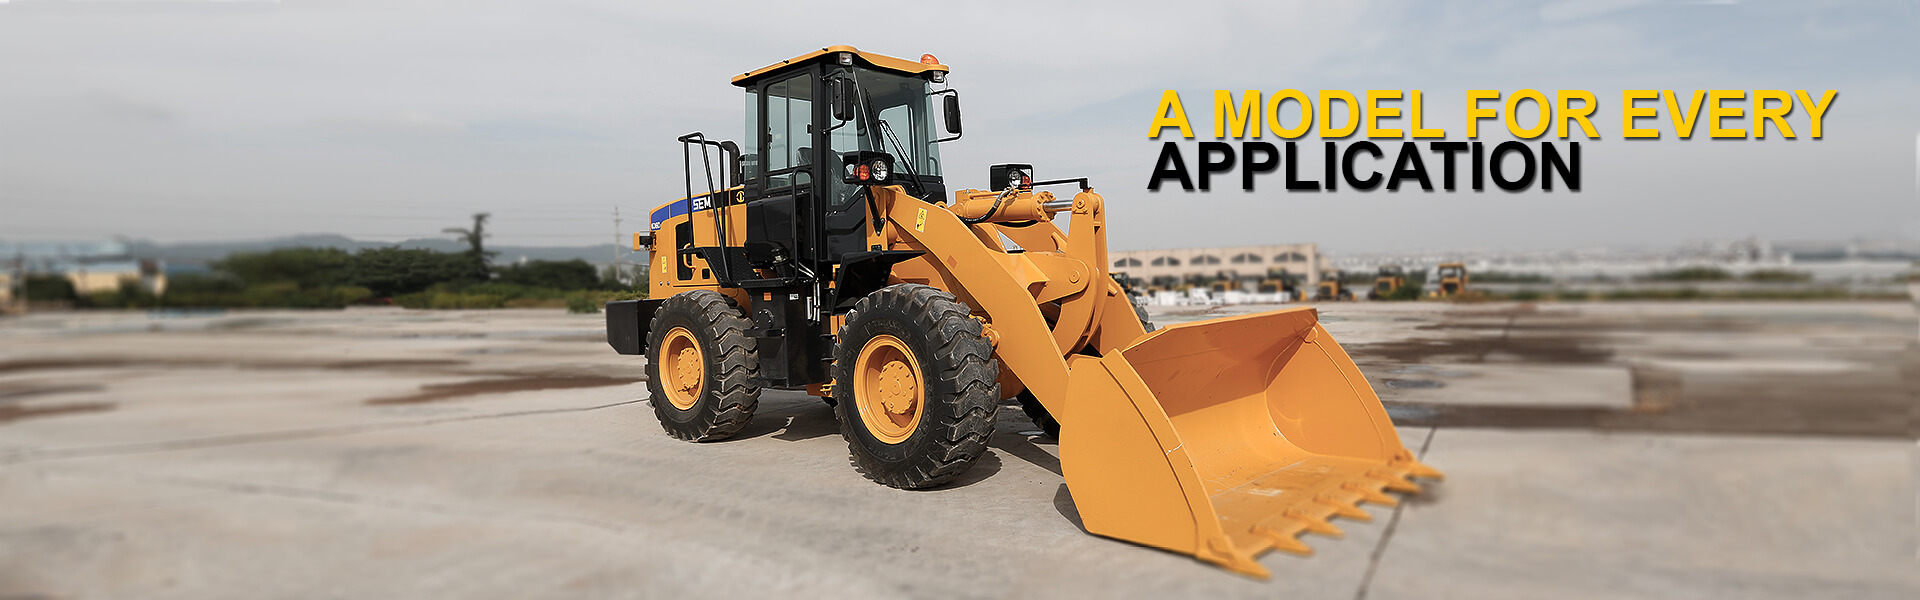 Slide-Wheel-Loader